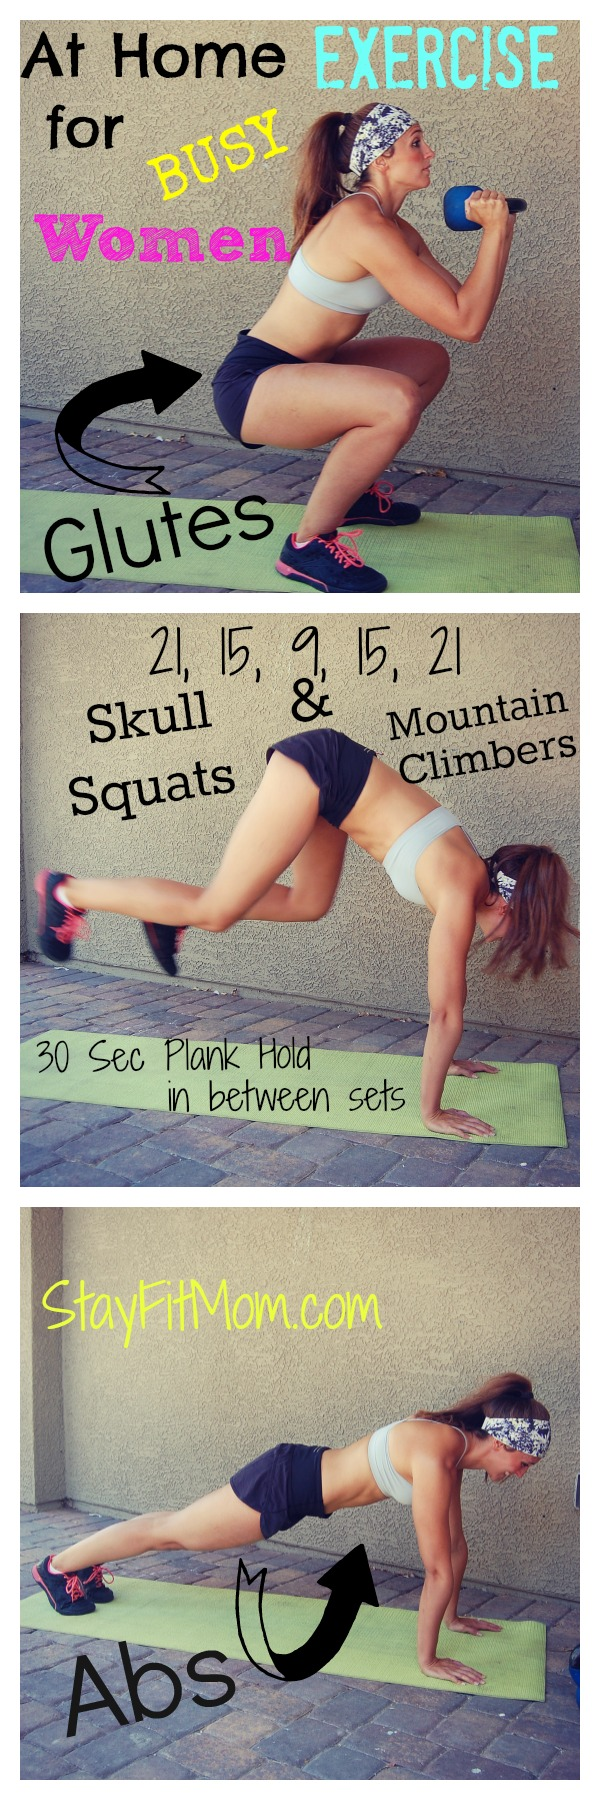 I've gotta try this Glutes and Abs Workout when I get home! I love these at home workouts from StayFitMom.com